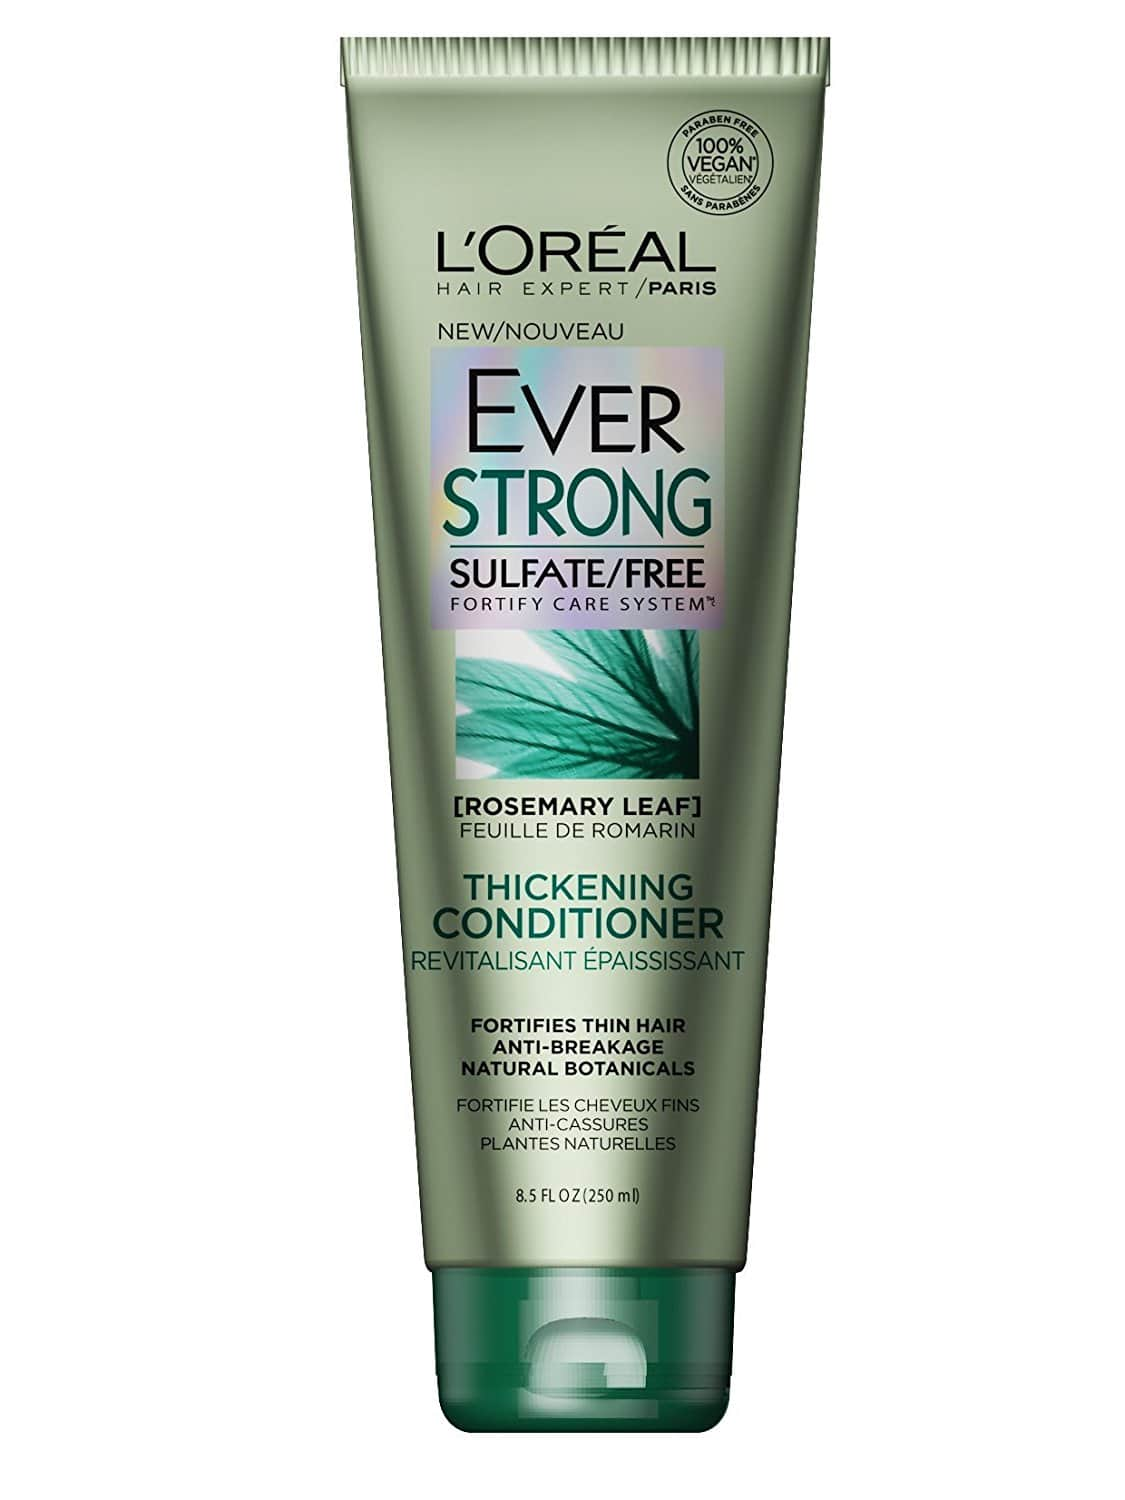 L'Oréal EverStrong Sulfate Free Thickening Conditioner, 8.5 fl. oz.